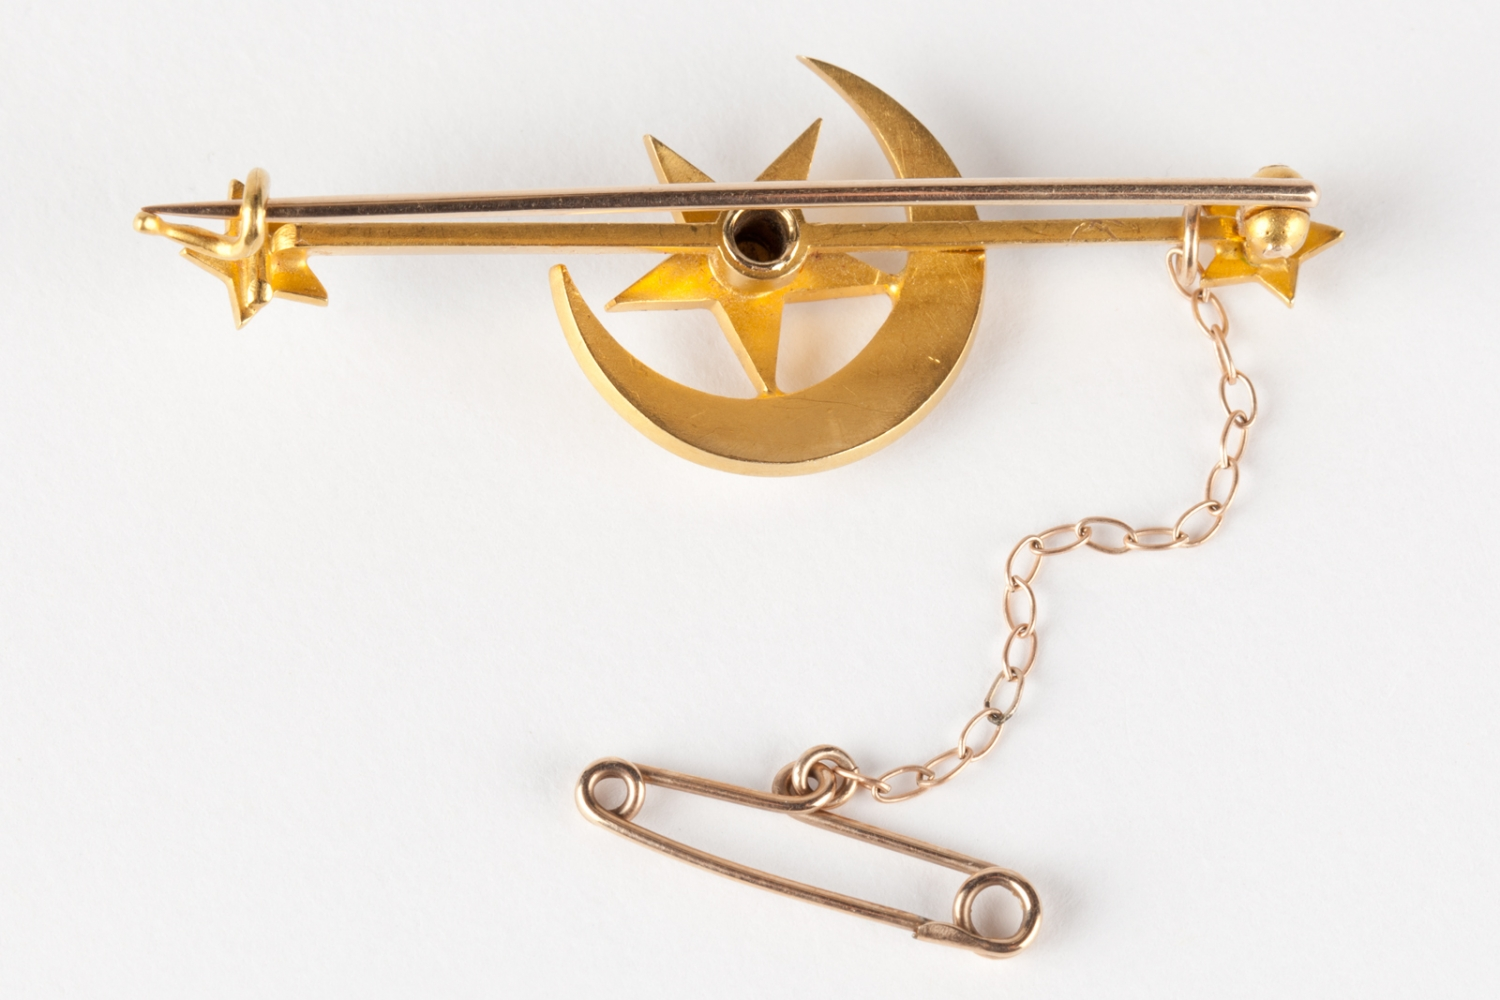 A gold bar brooch with a star and crescent moon design set with pearls. Made by Hardy Bros, Sydney, circa 1886.